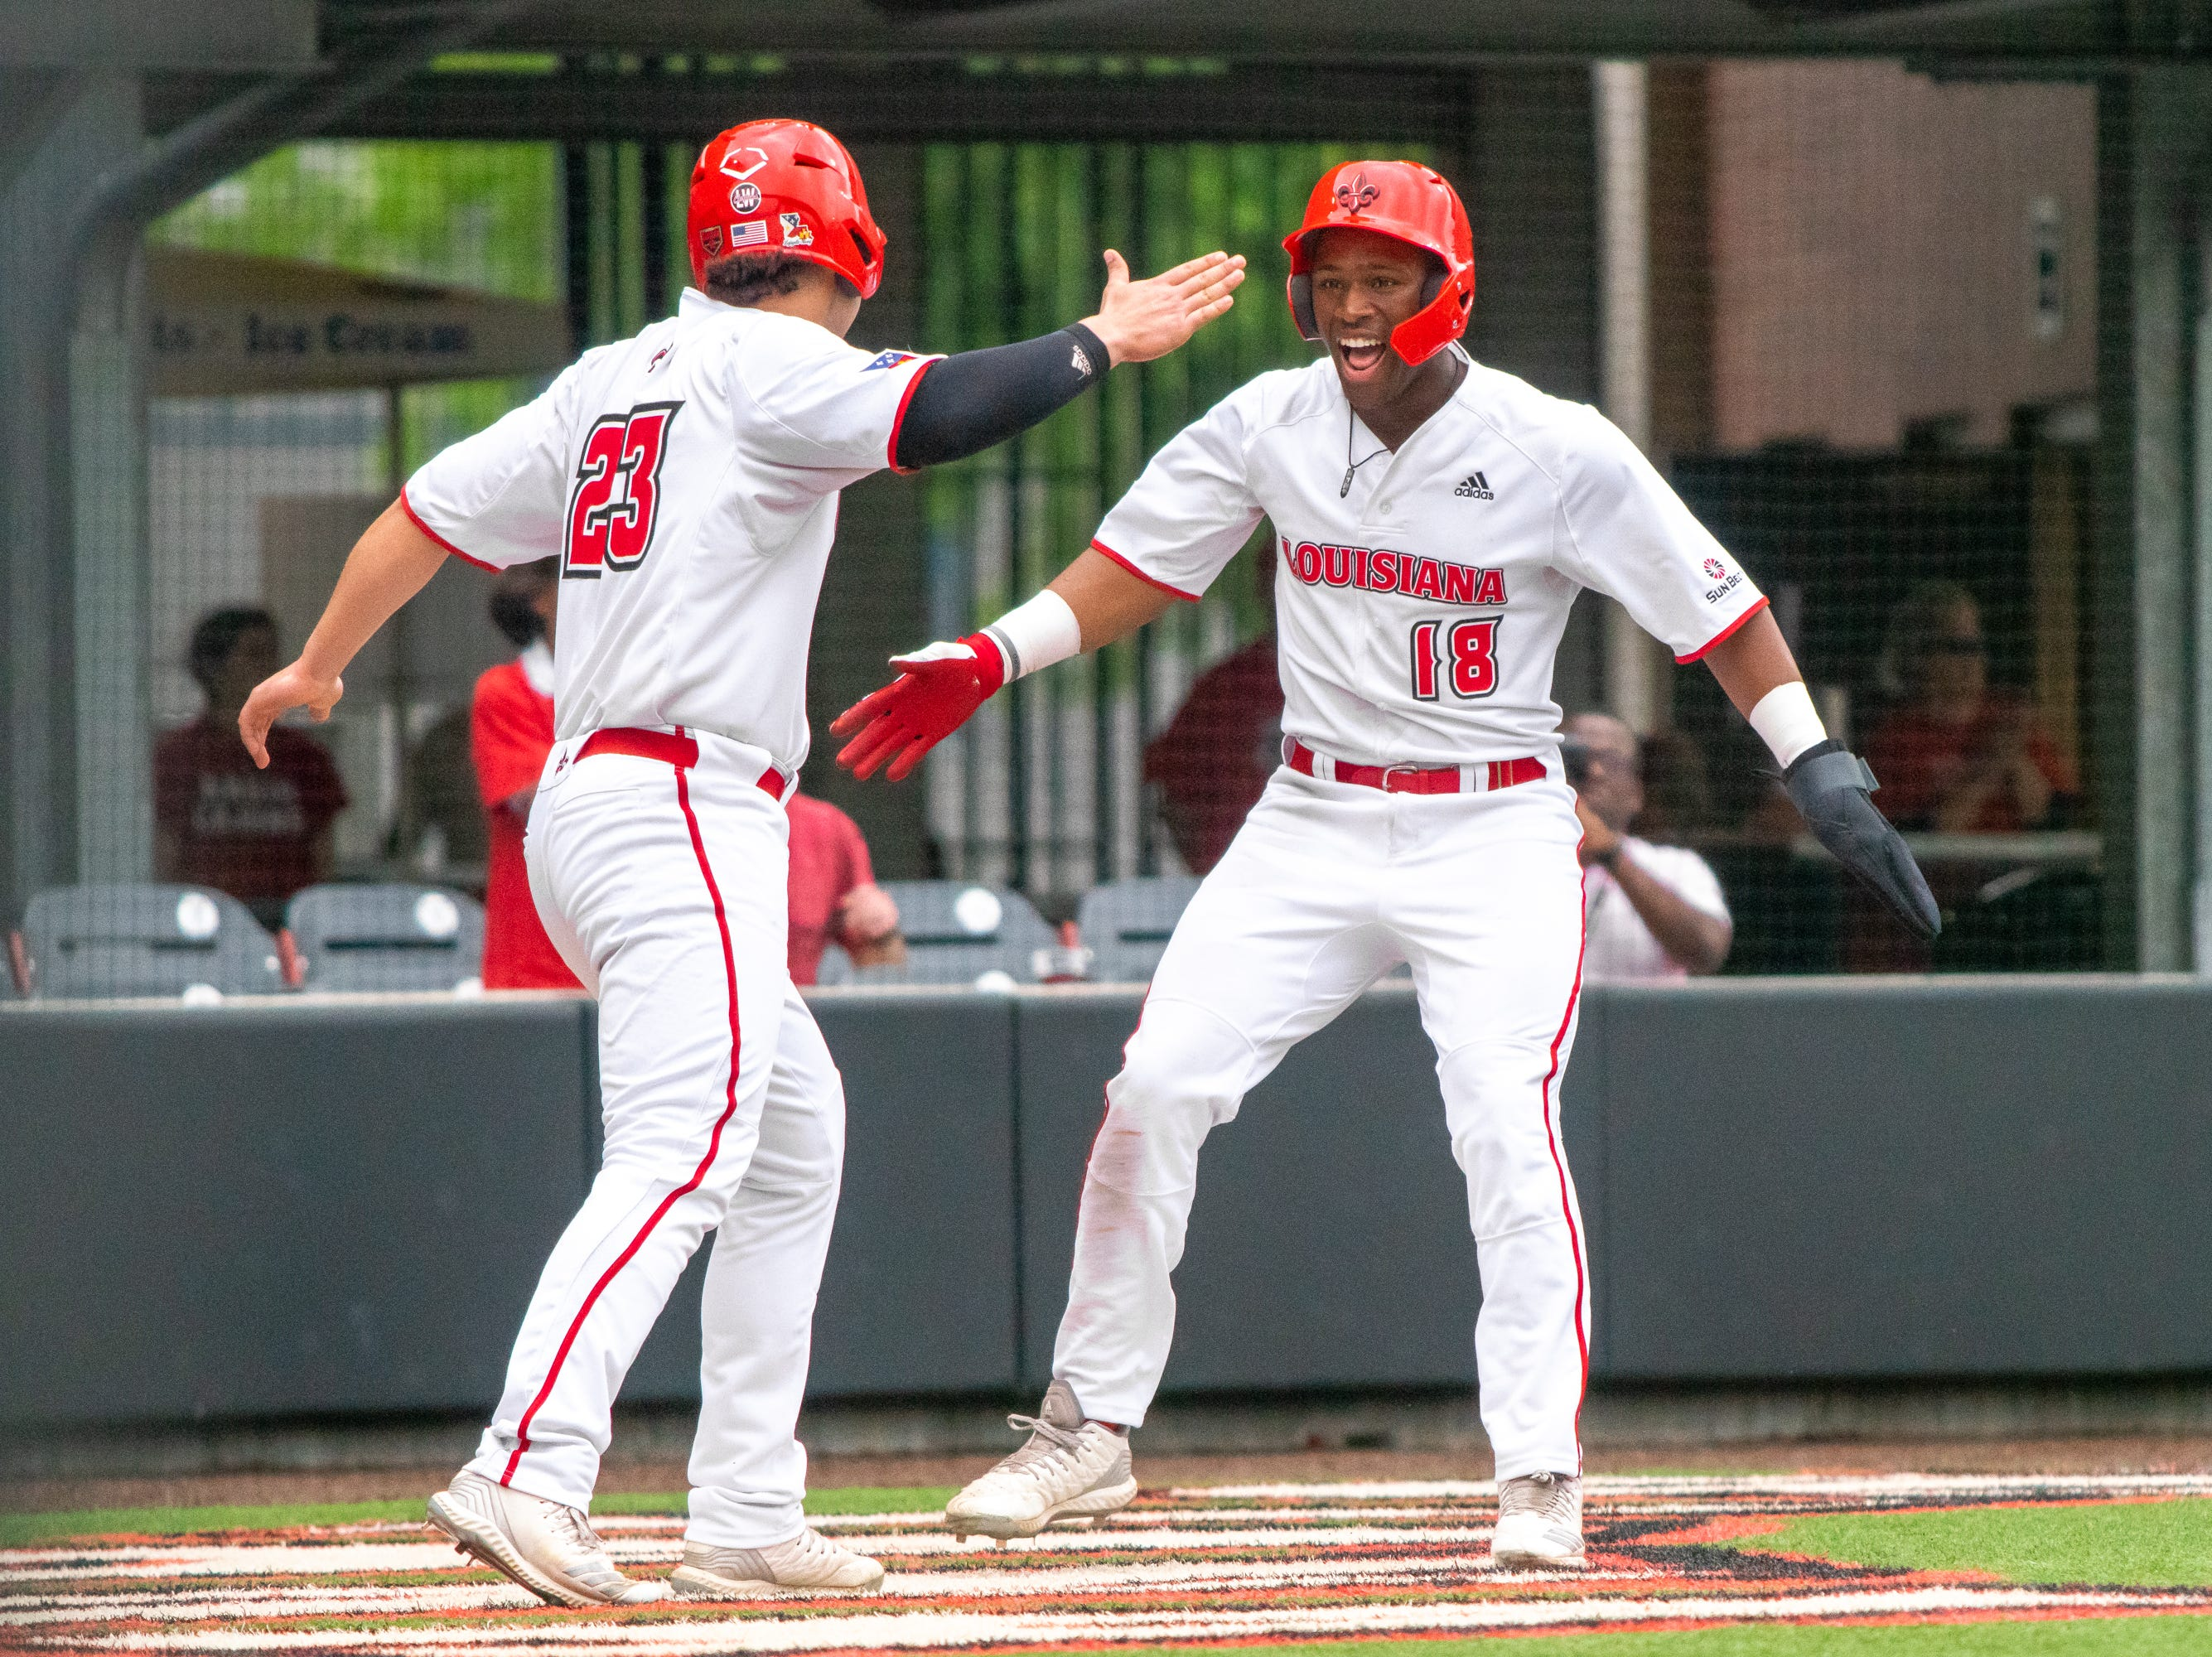 """UL's Handsome Monica (23) and Tremaine Spears (18) celebrate their two-run score as the Ragin' Cajuns take on the South Alabama Jaguars at M.L. """"Tigue"""" Moore Field on Saturday, April 13, 2019."""